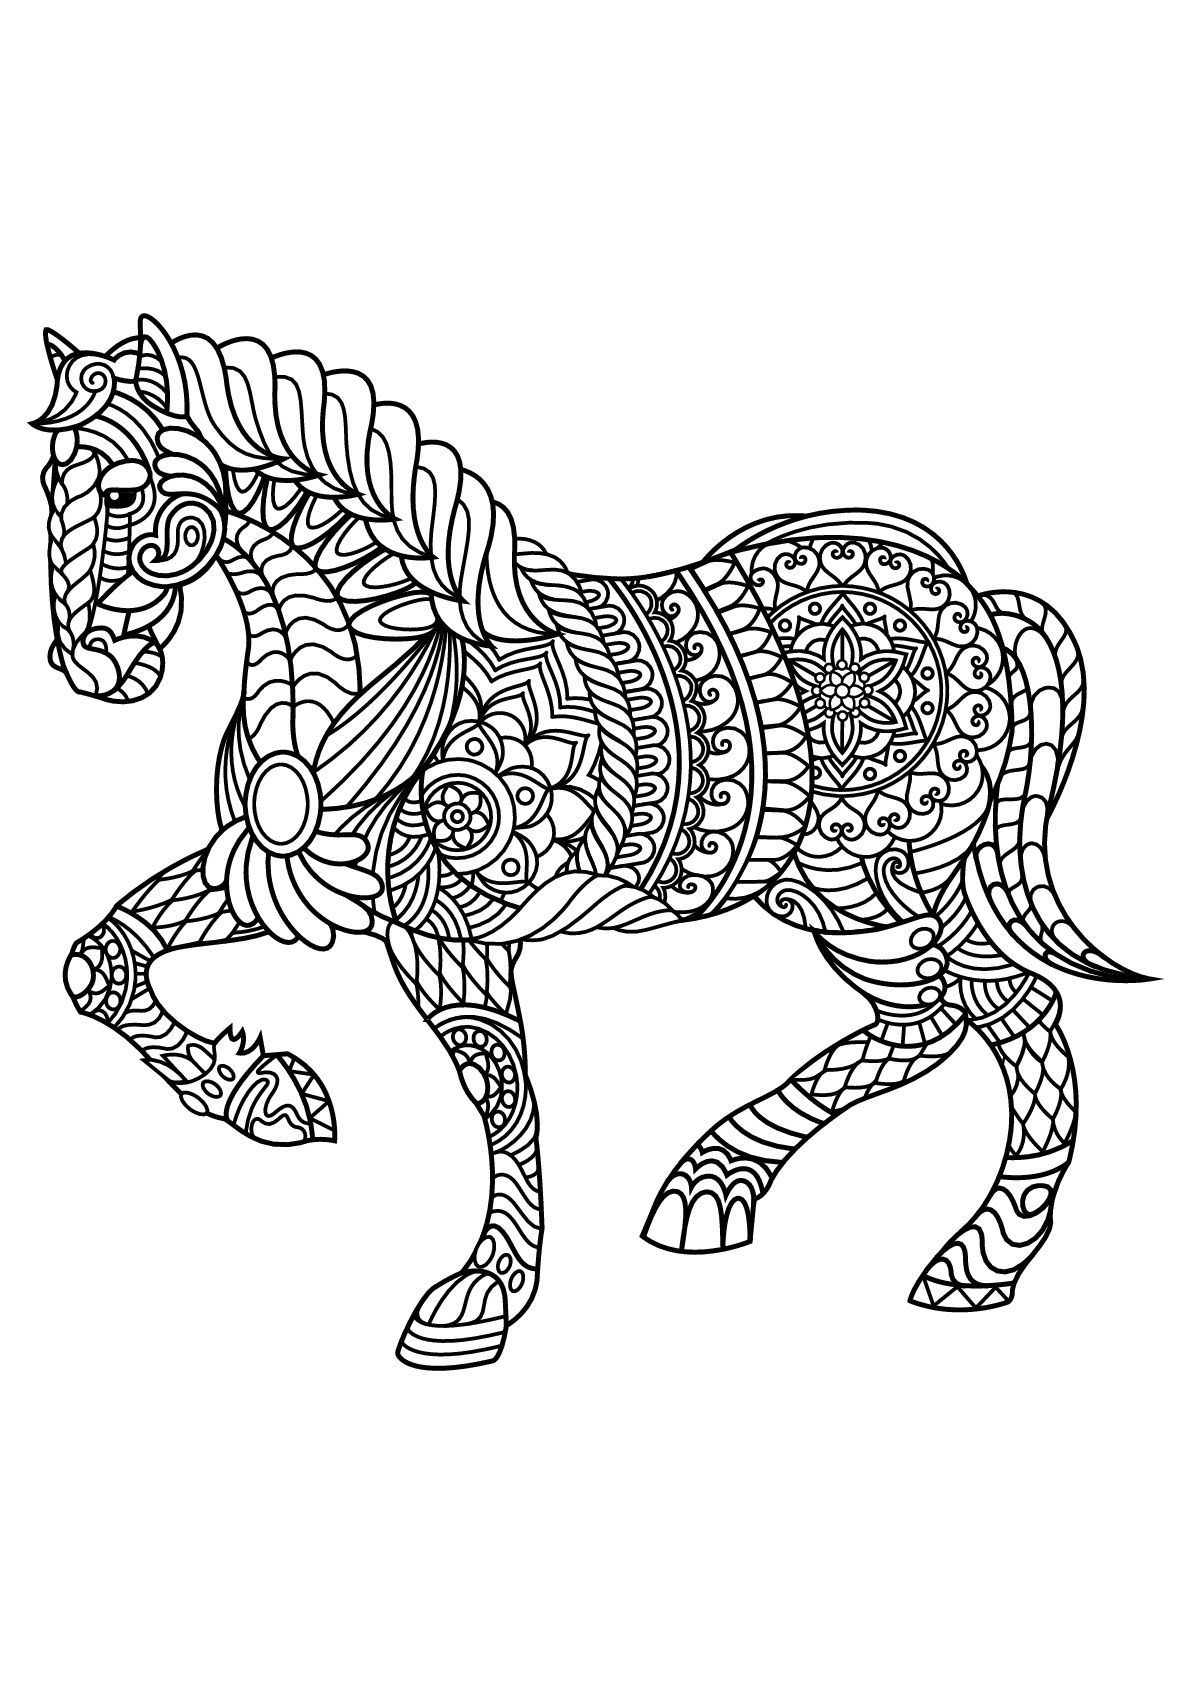 Free book horse | Horses - Coloring pages for adults ...